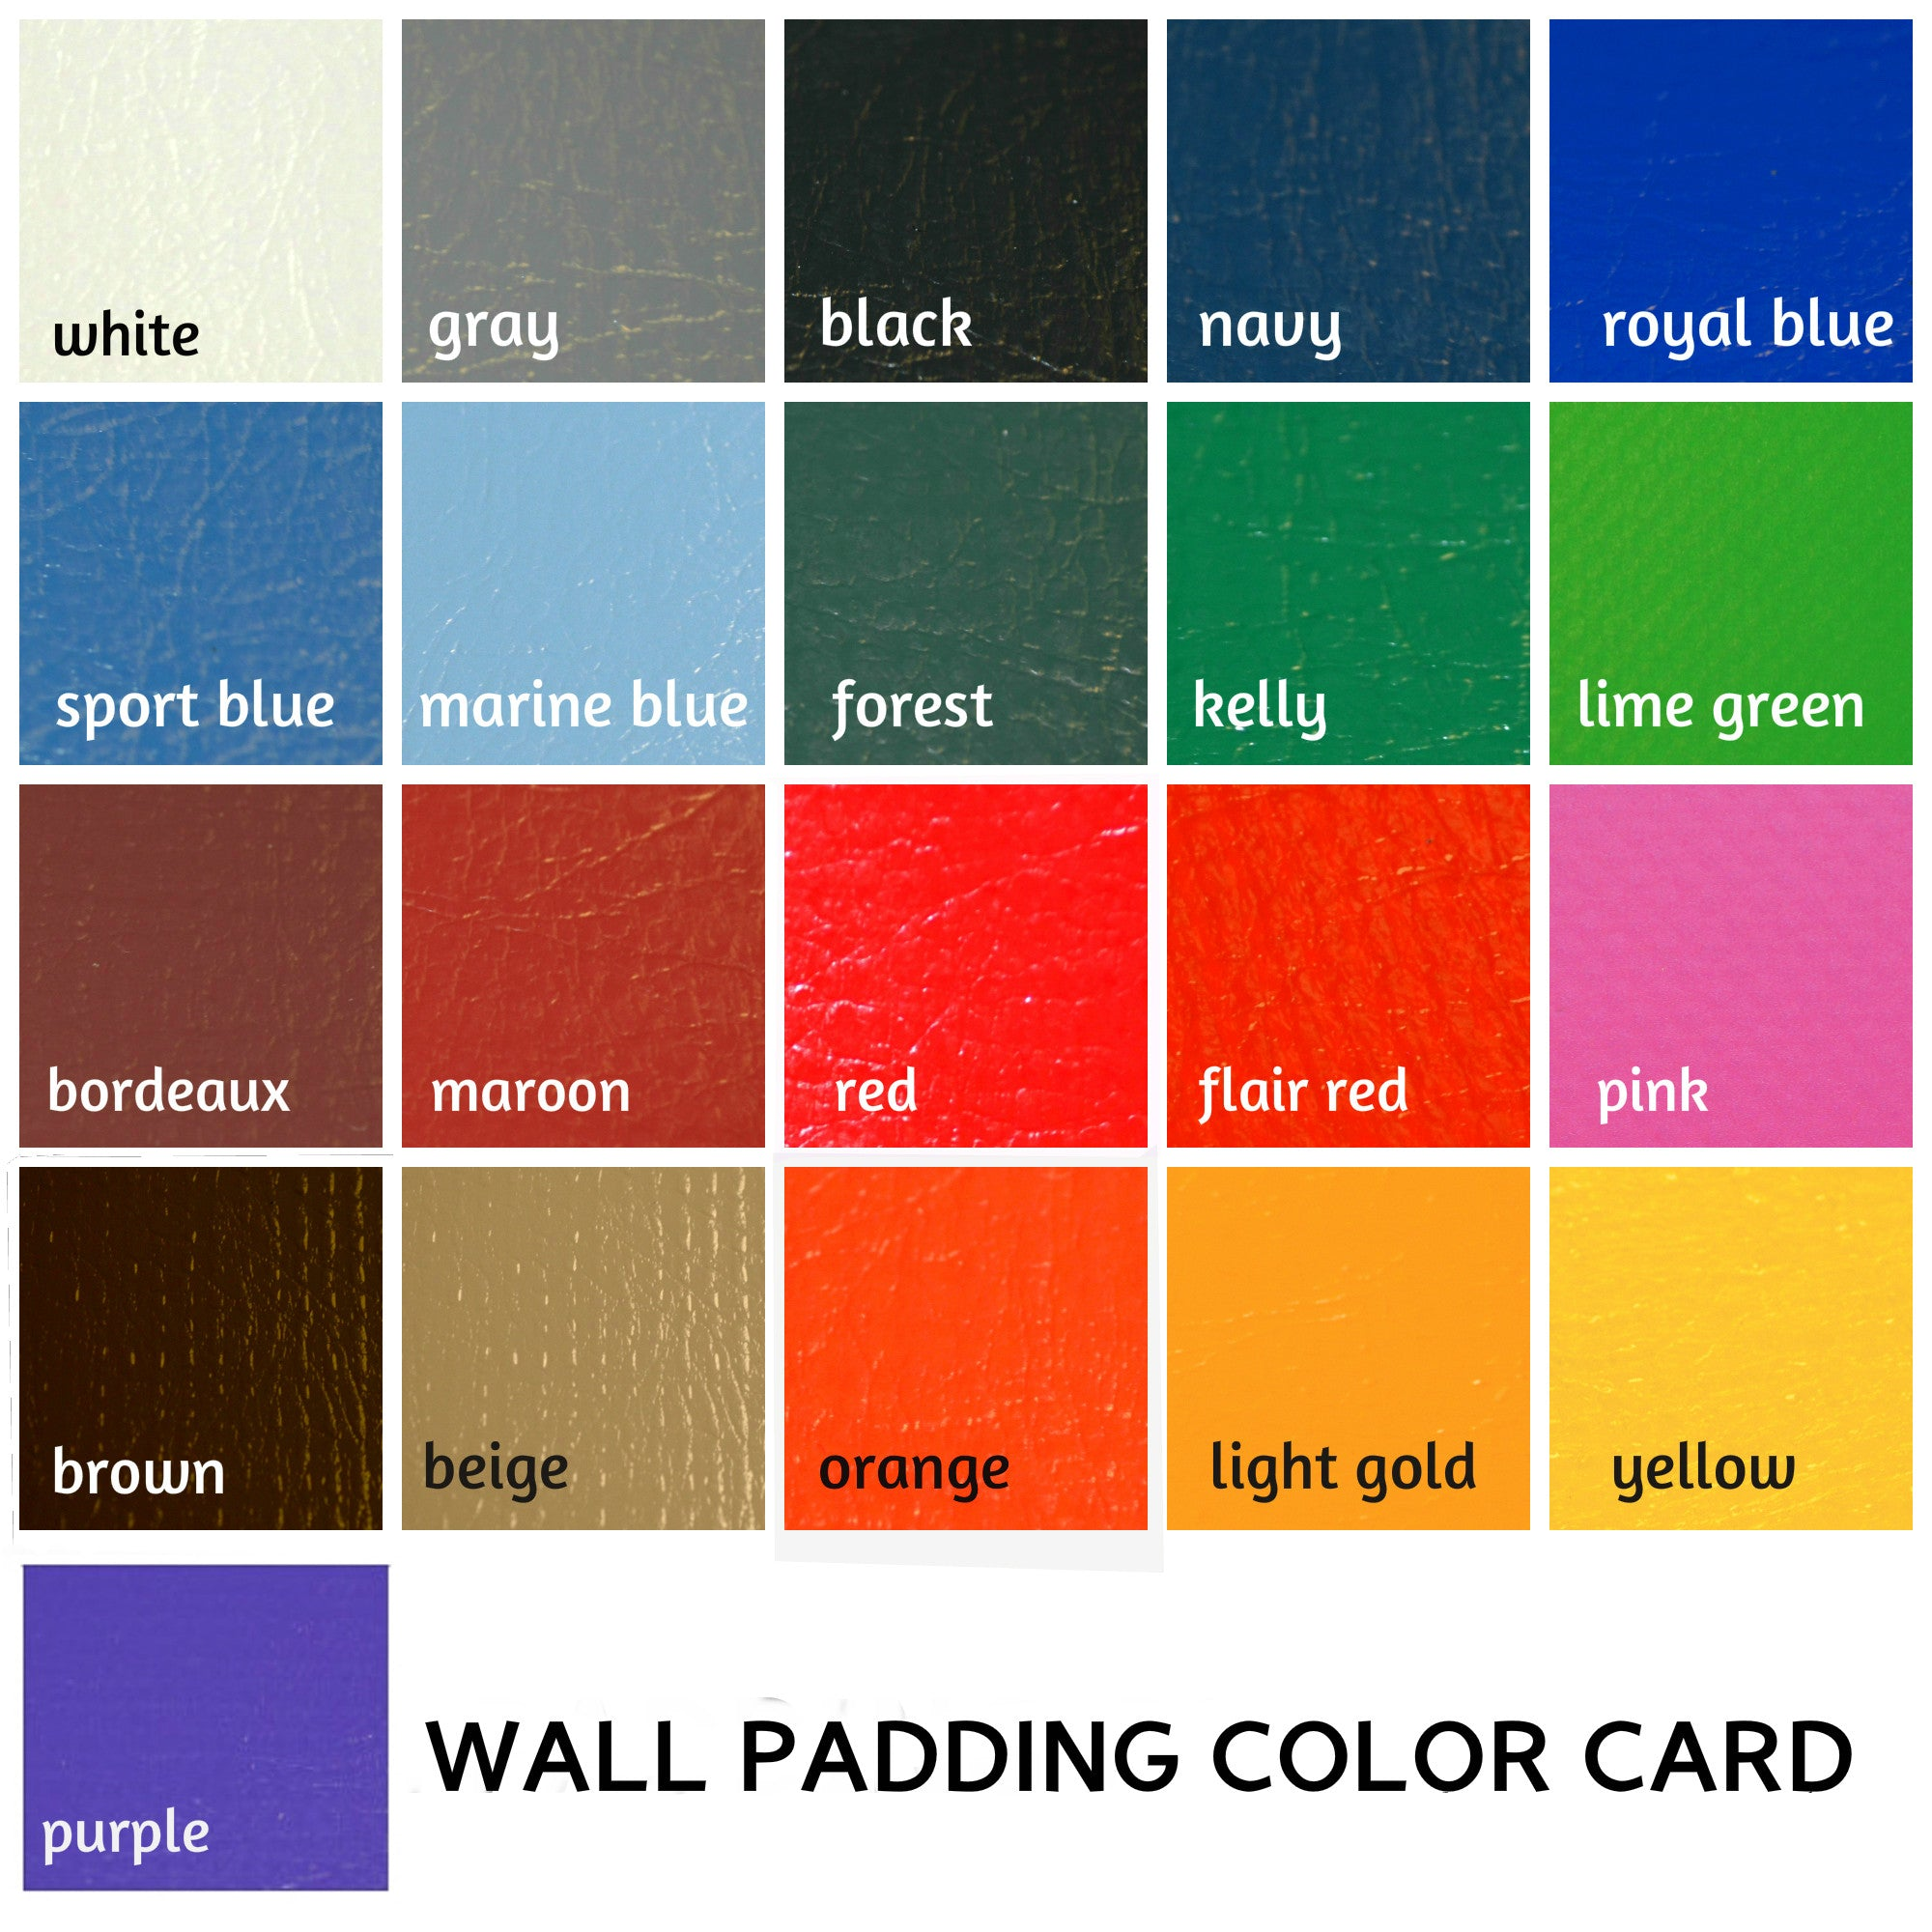 Colors Available for Wall Padding